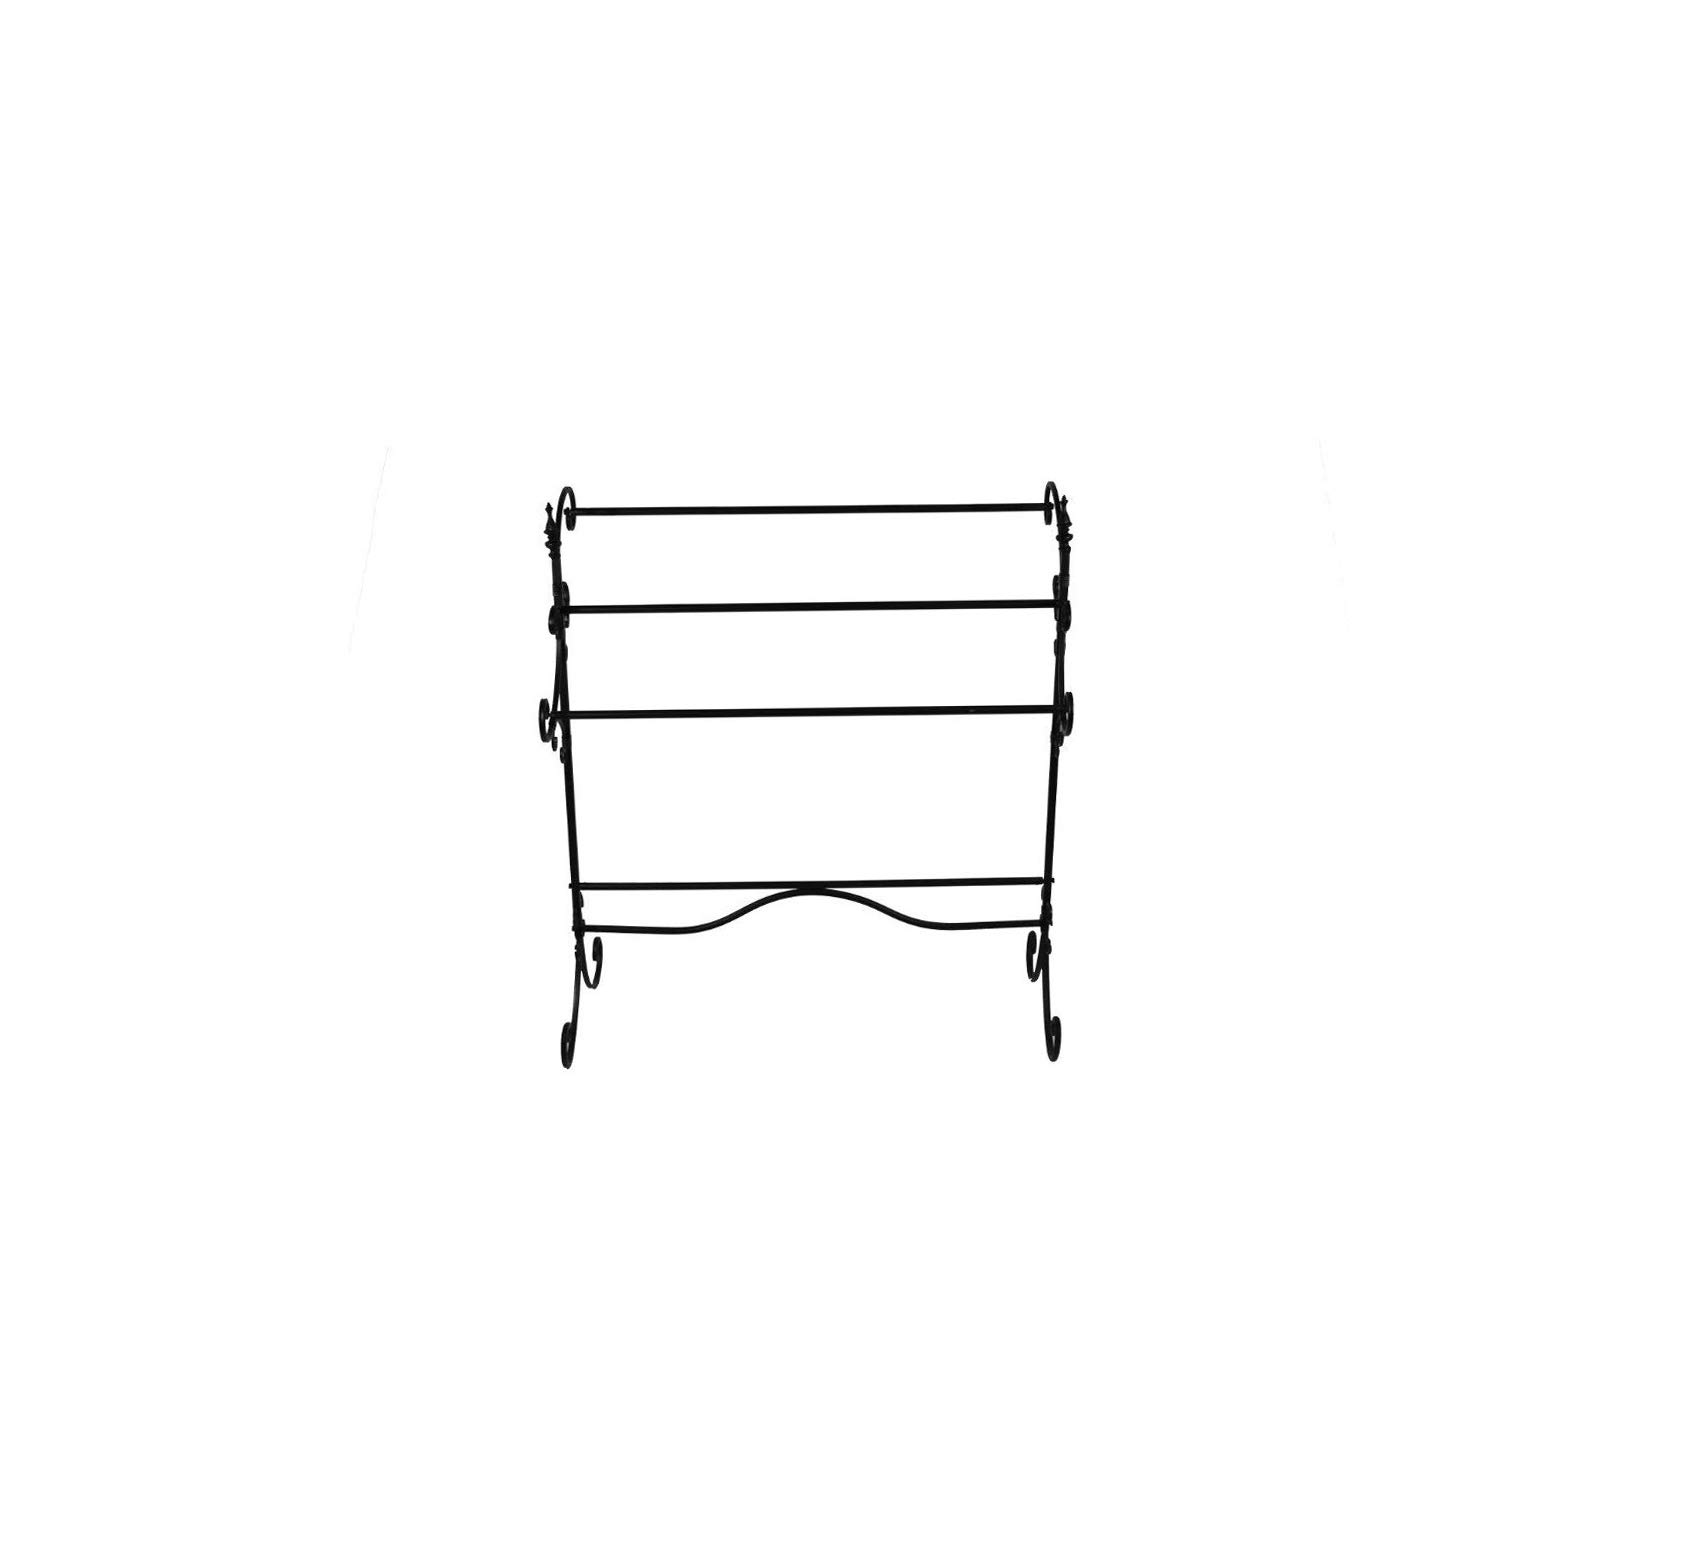 Wood & Style Spacious Metal Blanket Rack with Three Bars, Black Comfy Living Home Décor Furniture Heavy Duty